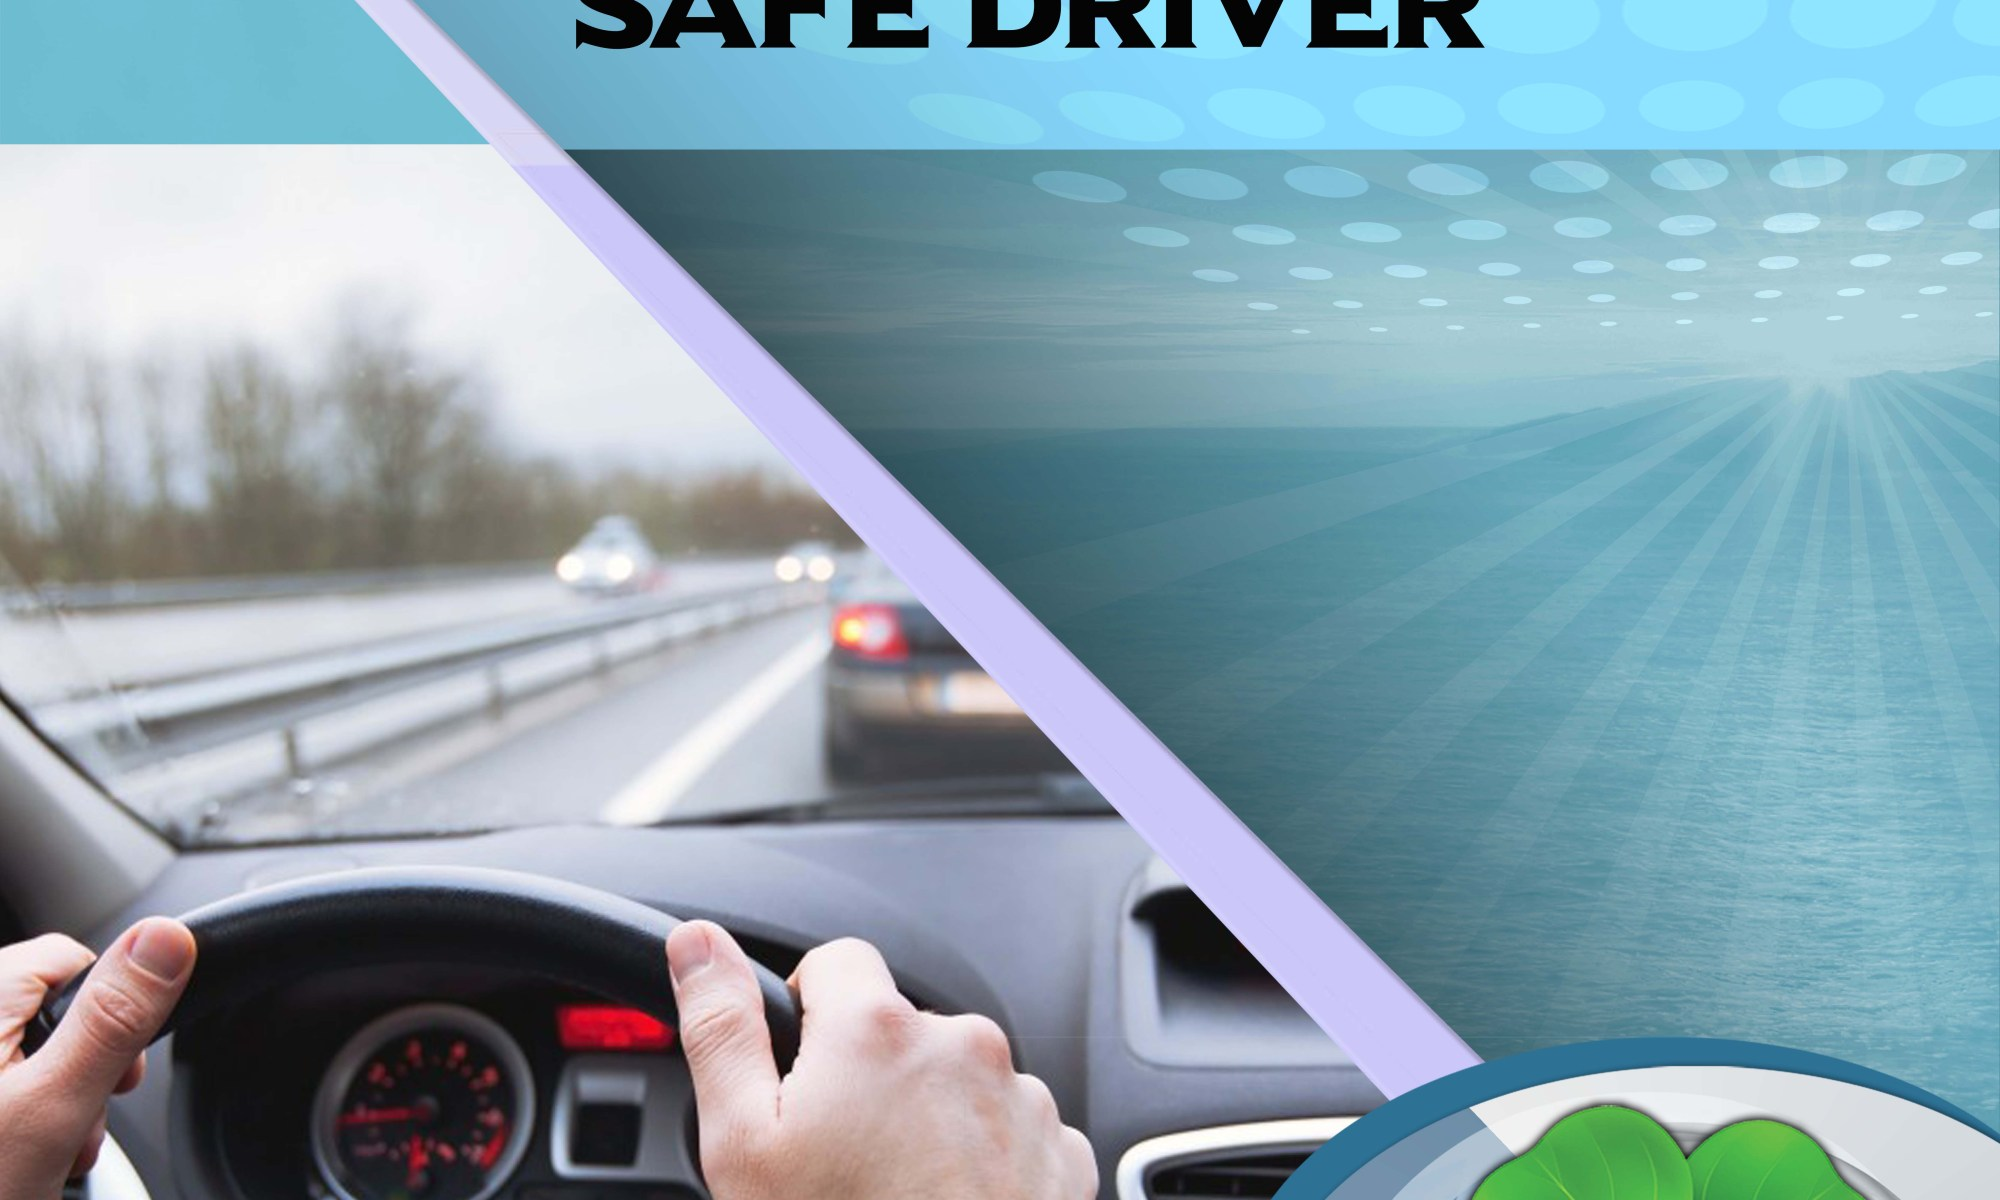 WELCOME SAFE DRIVER